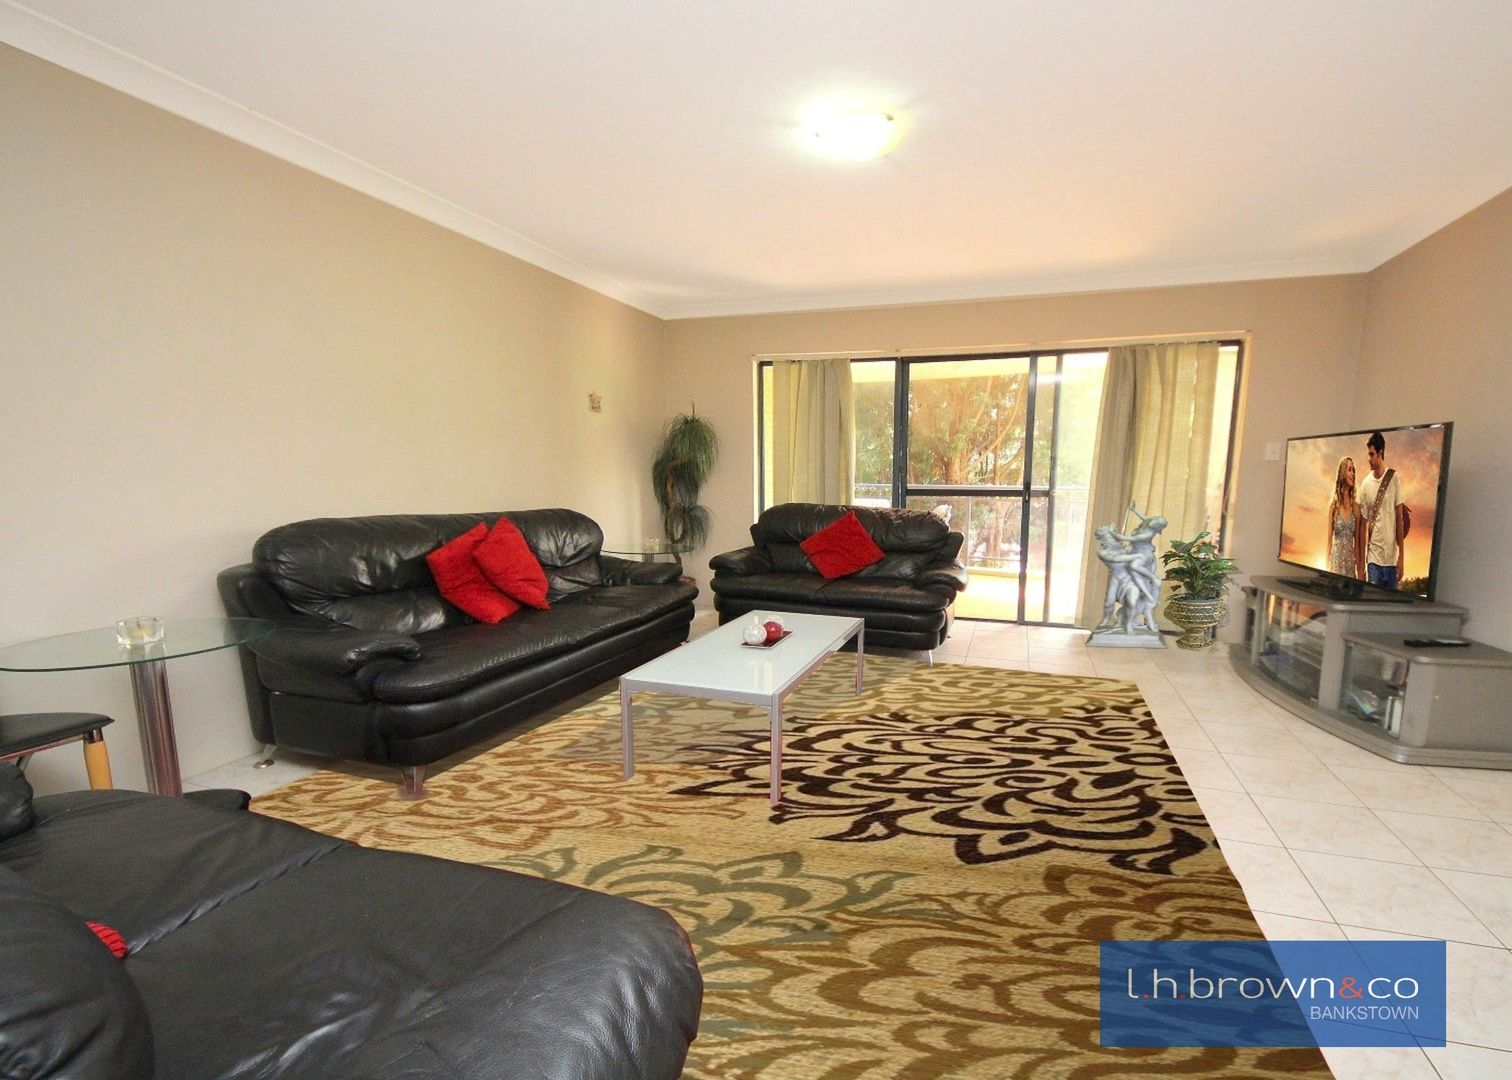 Unit 13/4-8 Gordon St, Bankstown NSW 2200, Image 1